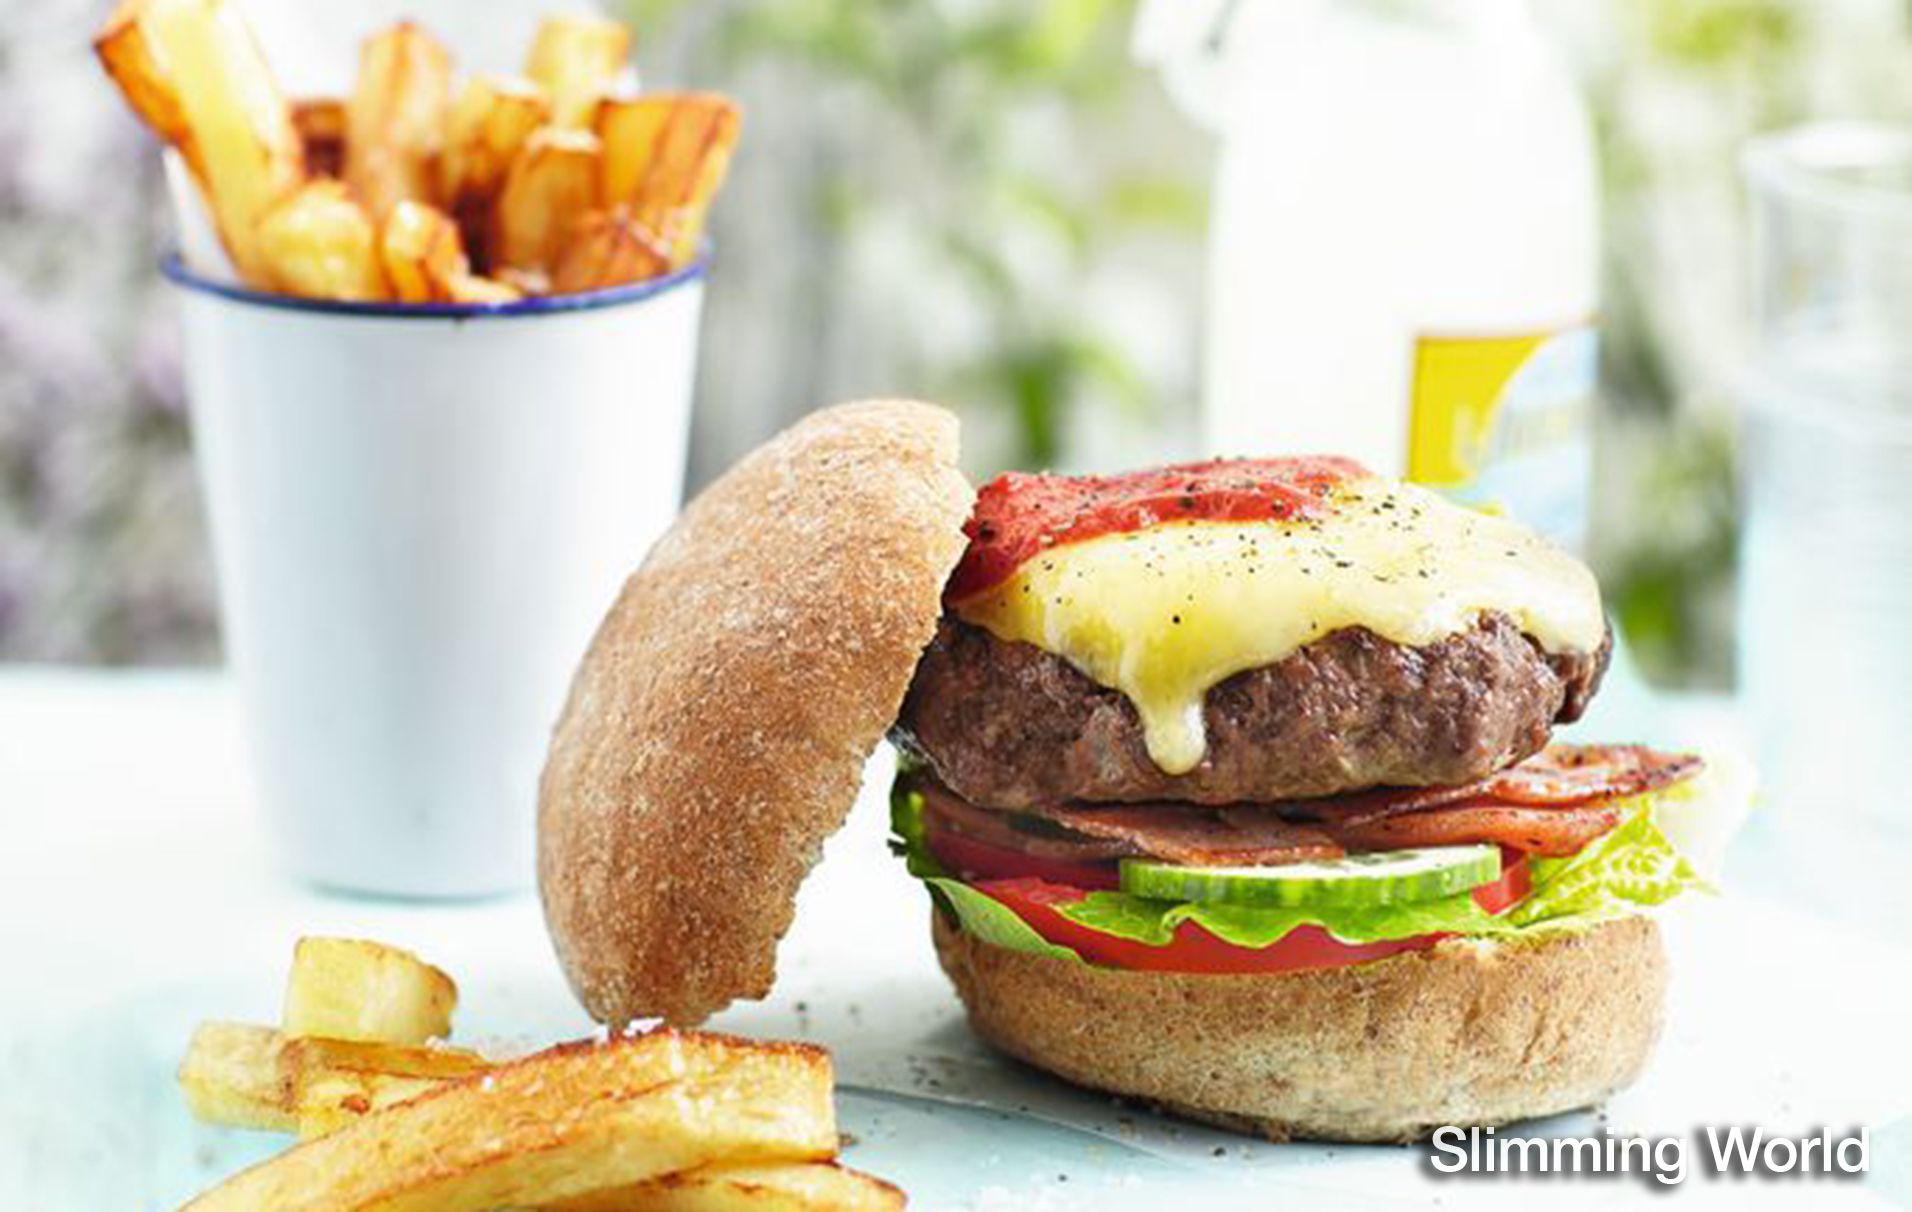 Slimming World S Burger Recipe American Recipes Goodtoknow